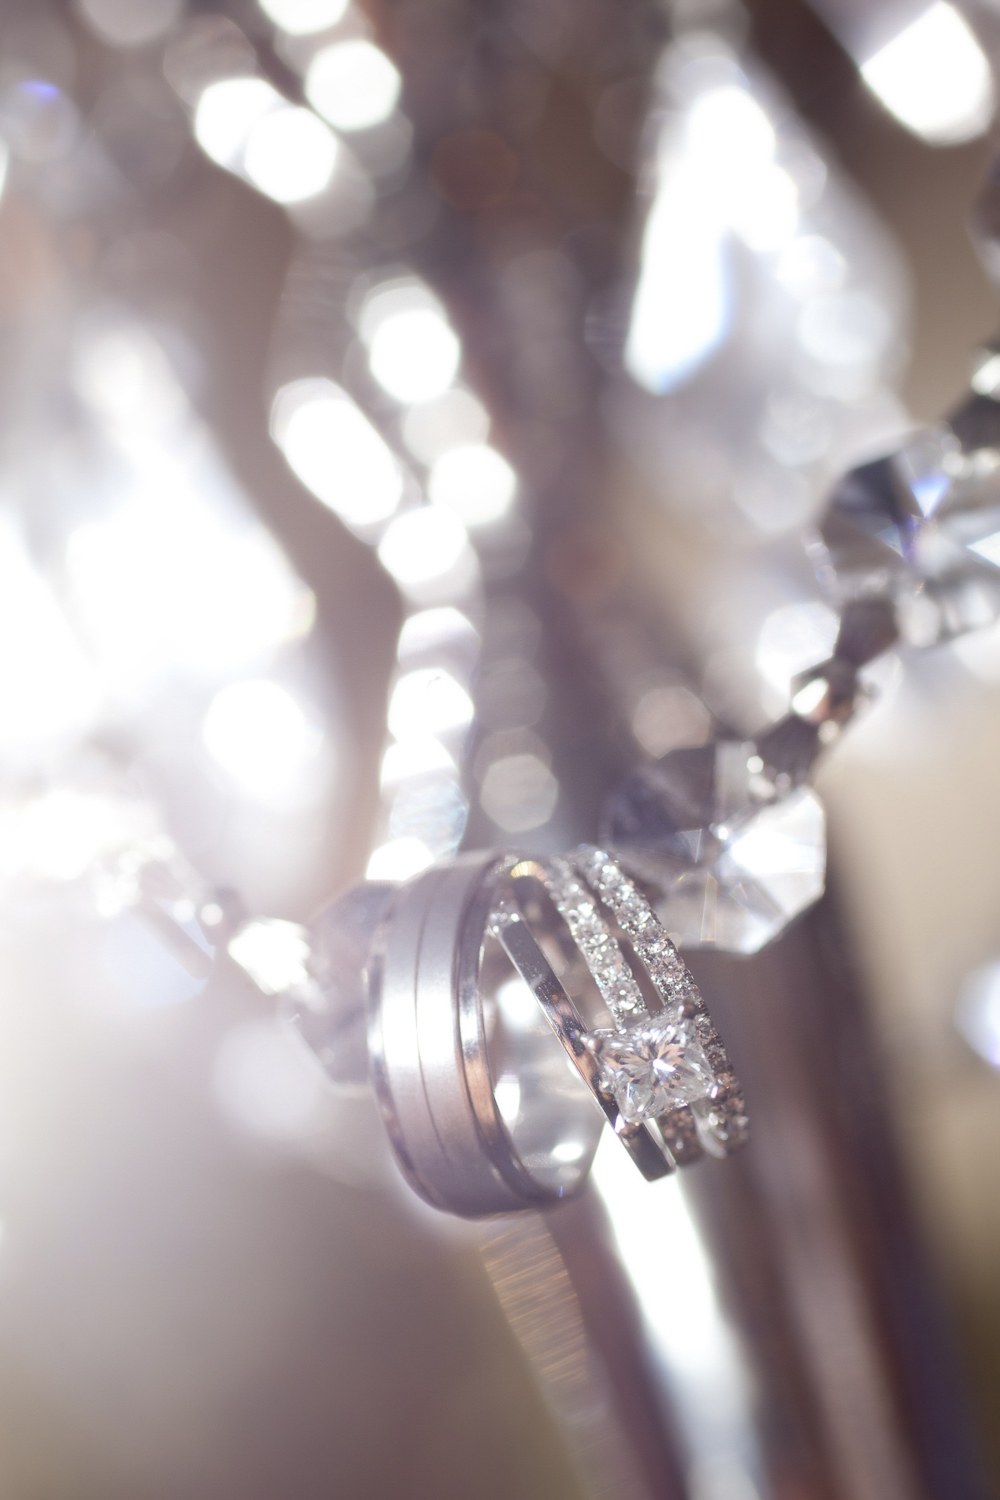 Indianapolis-Indiana-Wedding-Photographer-Crowes-Eye-Photography-Rings.jpg